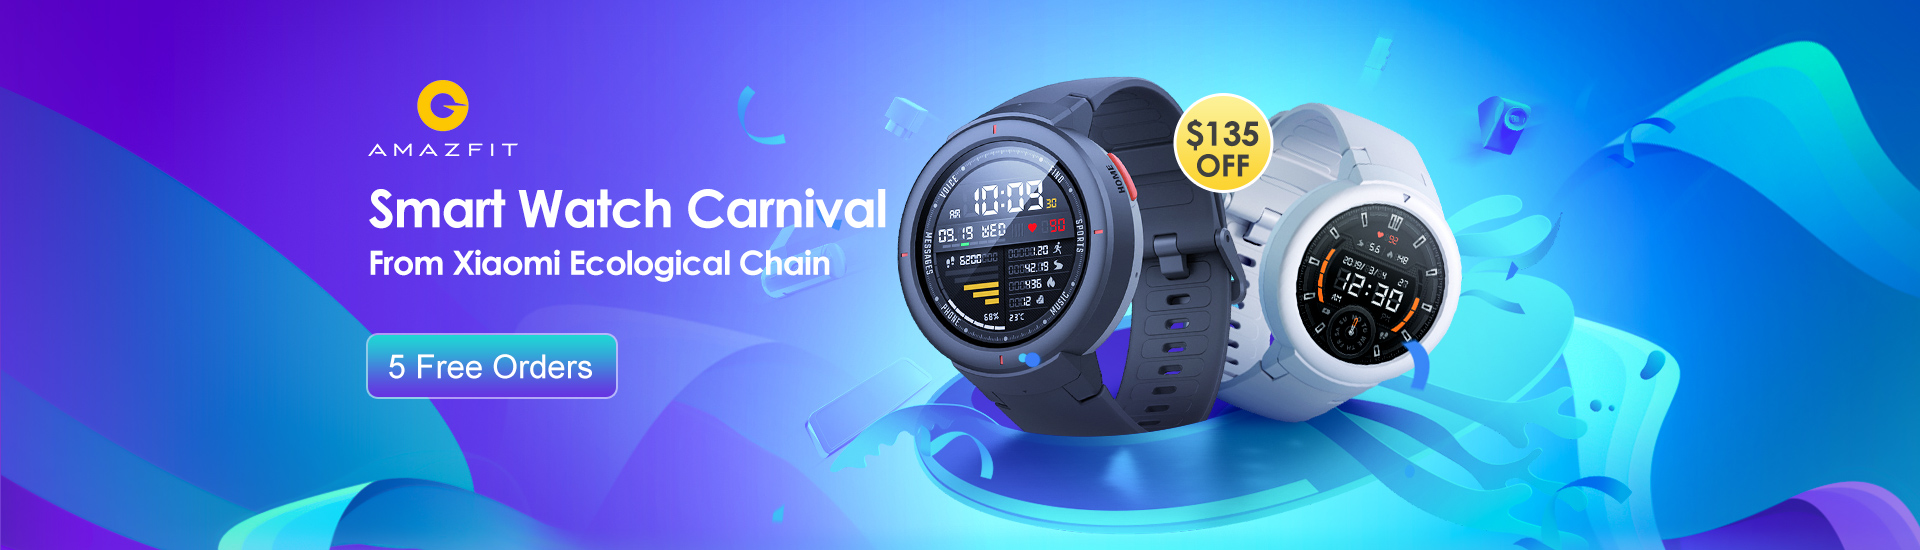 Amazfit Smart Watch Carnival chez Banggood